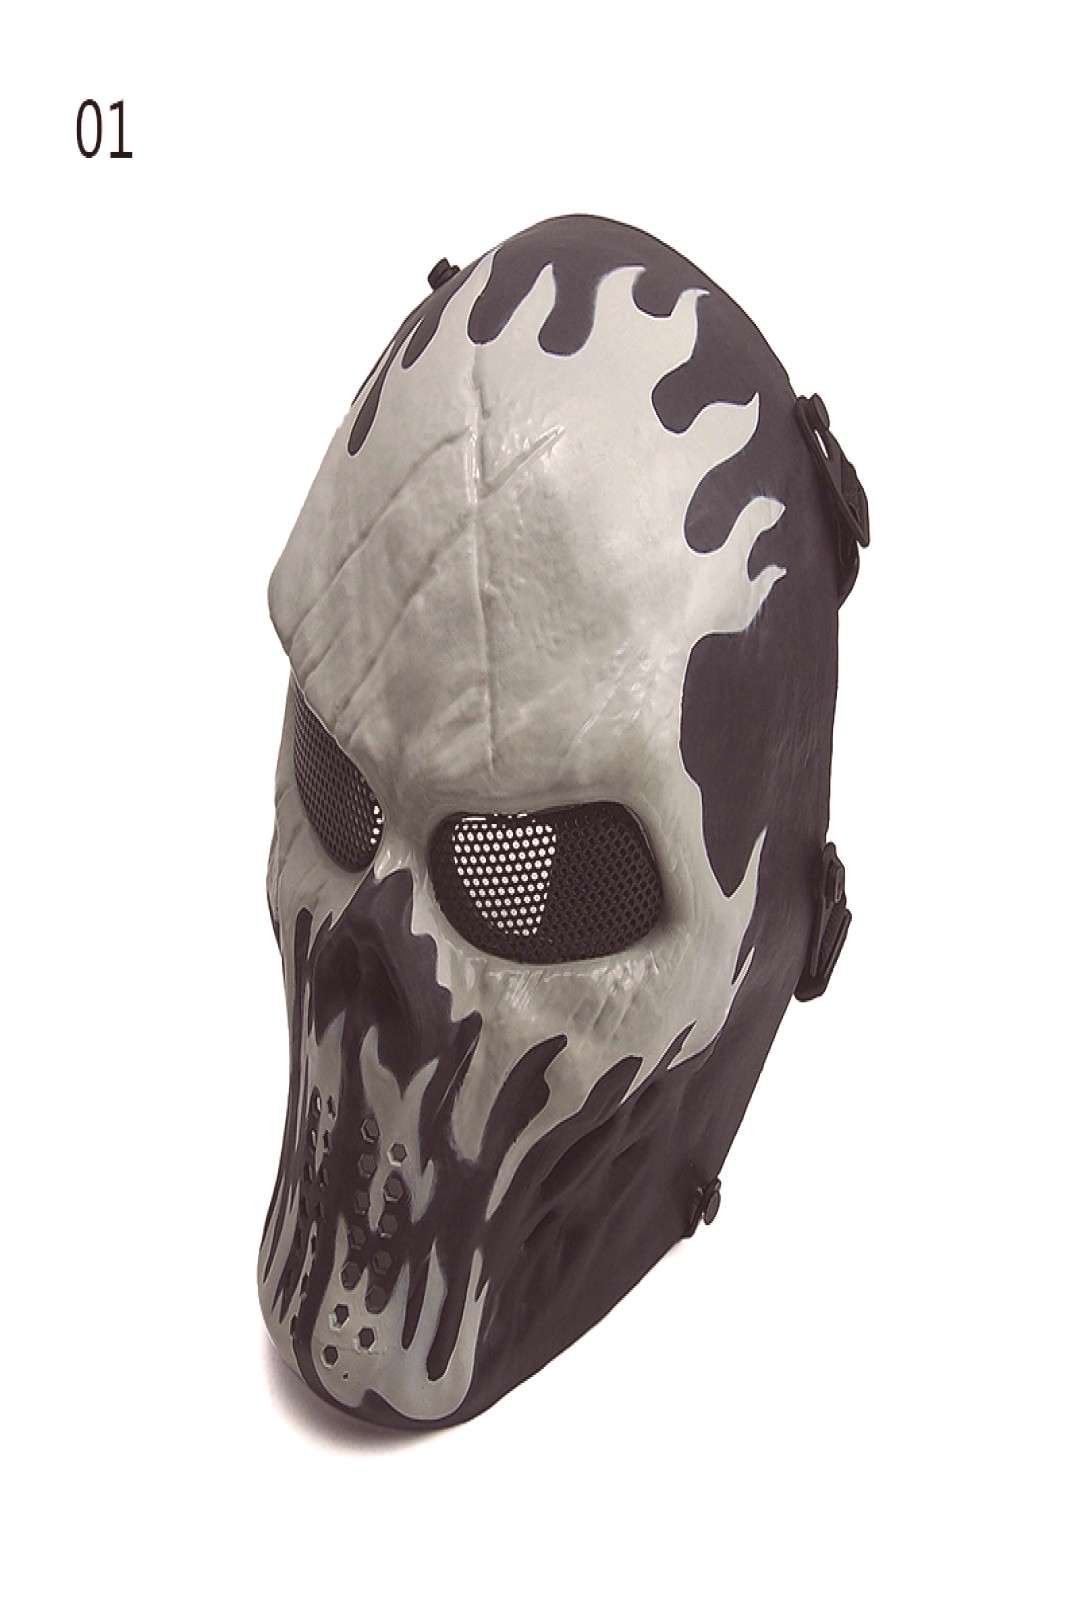 .GZ90058 Black Skull Skeleton Full Face Tactical Mask Paintball Airsoft Protect Security - Buy Pain